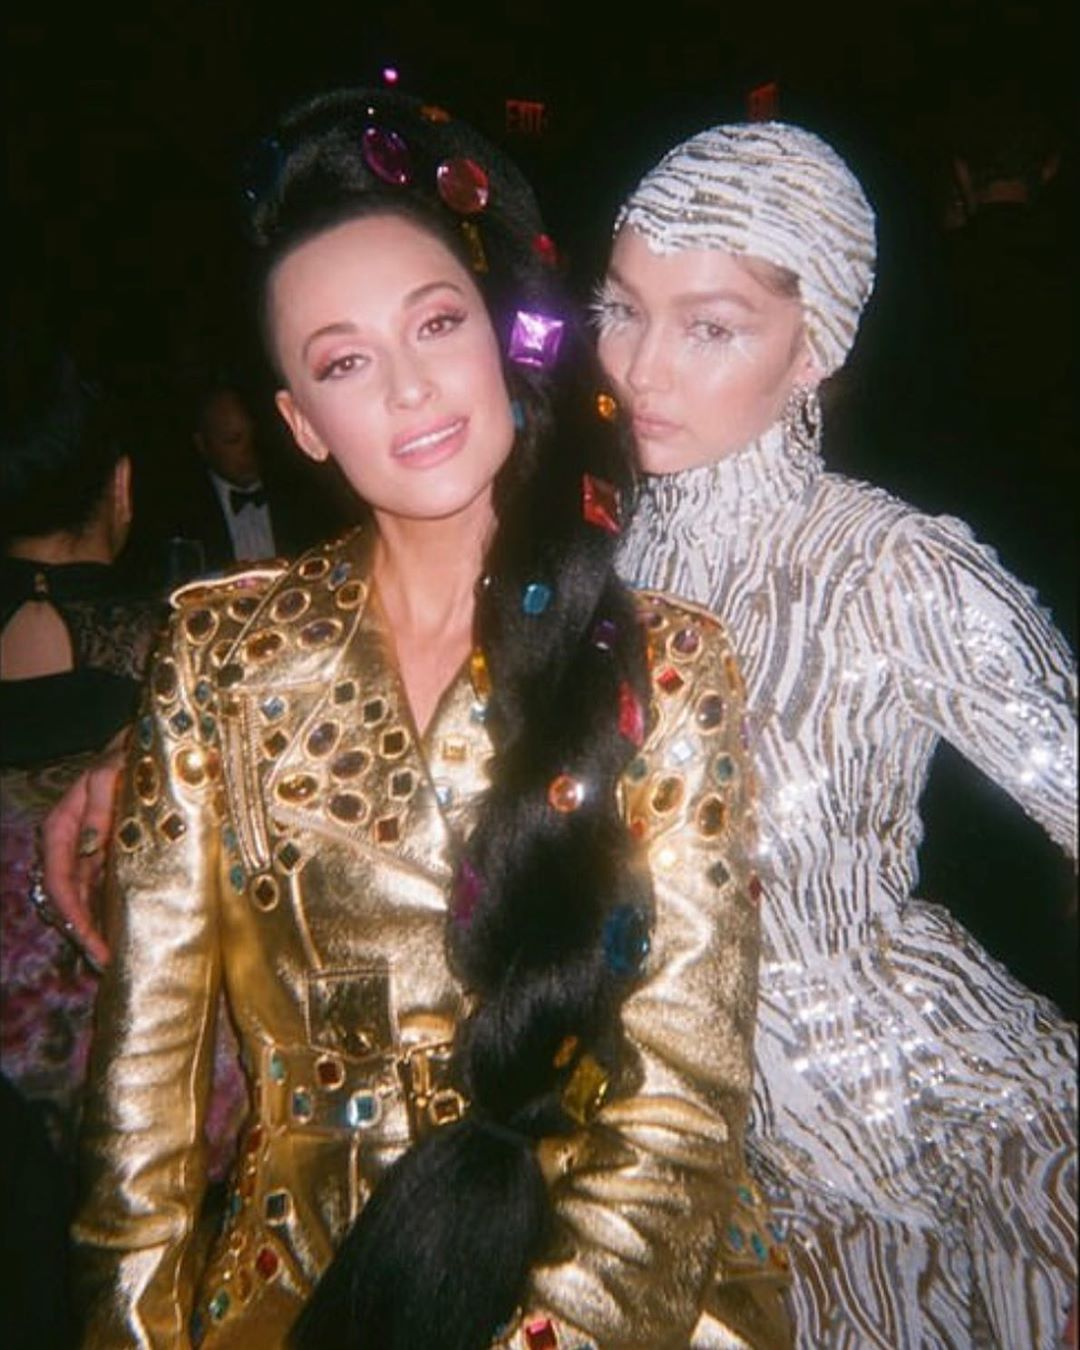 #tbt to a truly special and amazing night on Monday! 🎞📷 by @gigihadid #repost #gigihadid @spaceykacey #kaceymusgraves #metgala2019 #metgala #afterafter